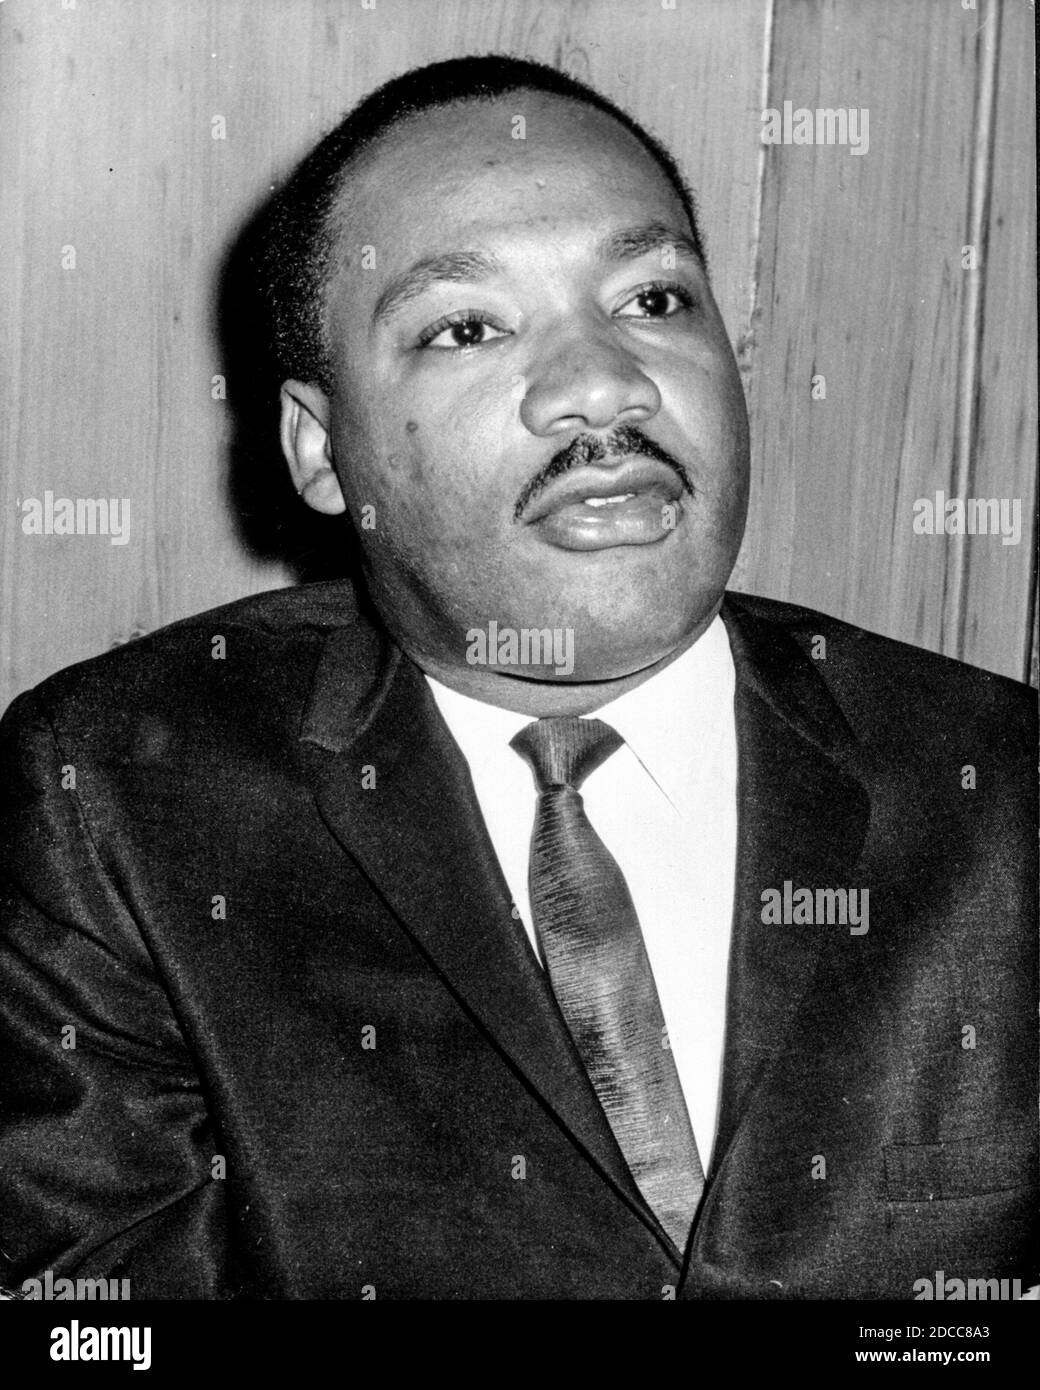 The leader of the civil rights movement in America, the Reverend Martin Luther King Jr Stock Photo